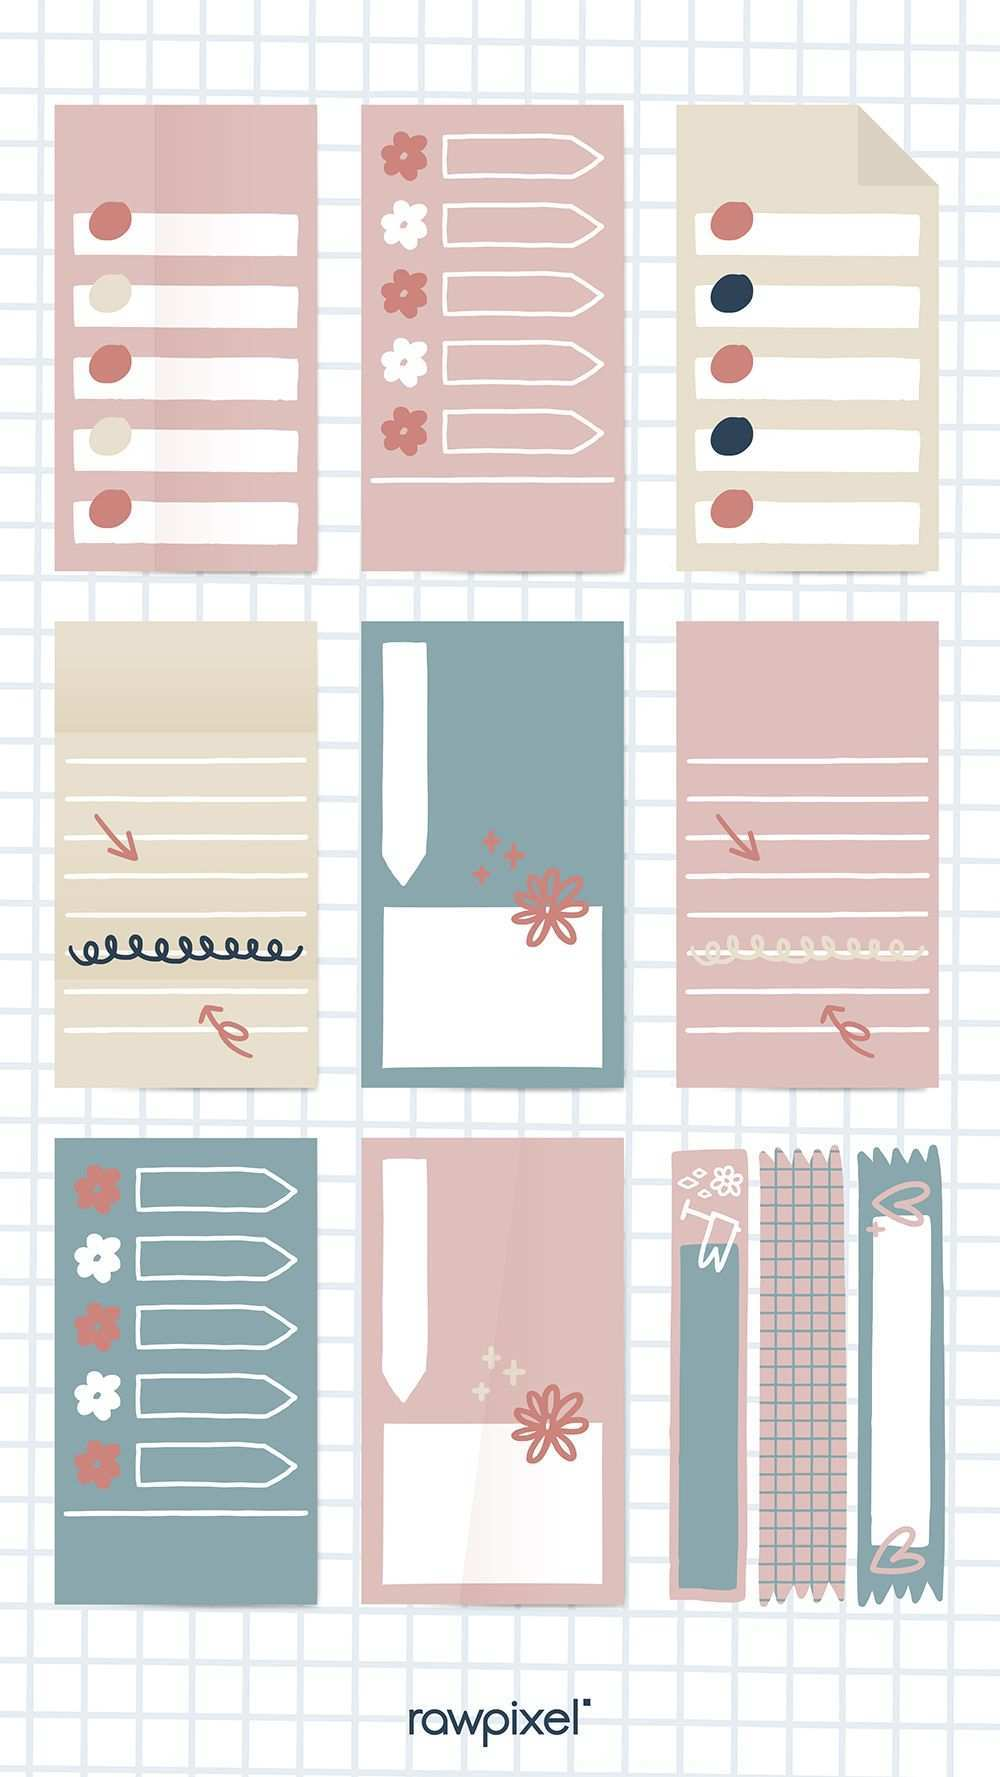 Download Premium Vector Of Sticky Note Doodle Collection Vectors 842895 Note Doodles Sticky Notes Vector Free